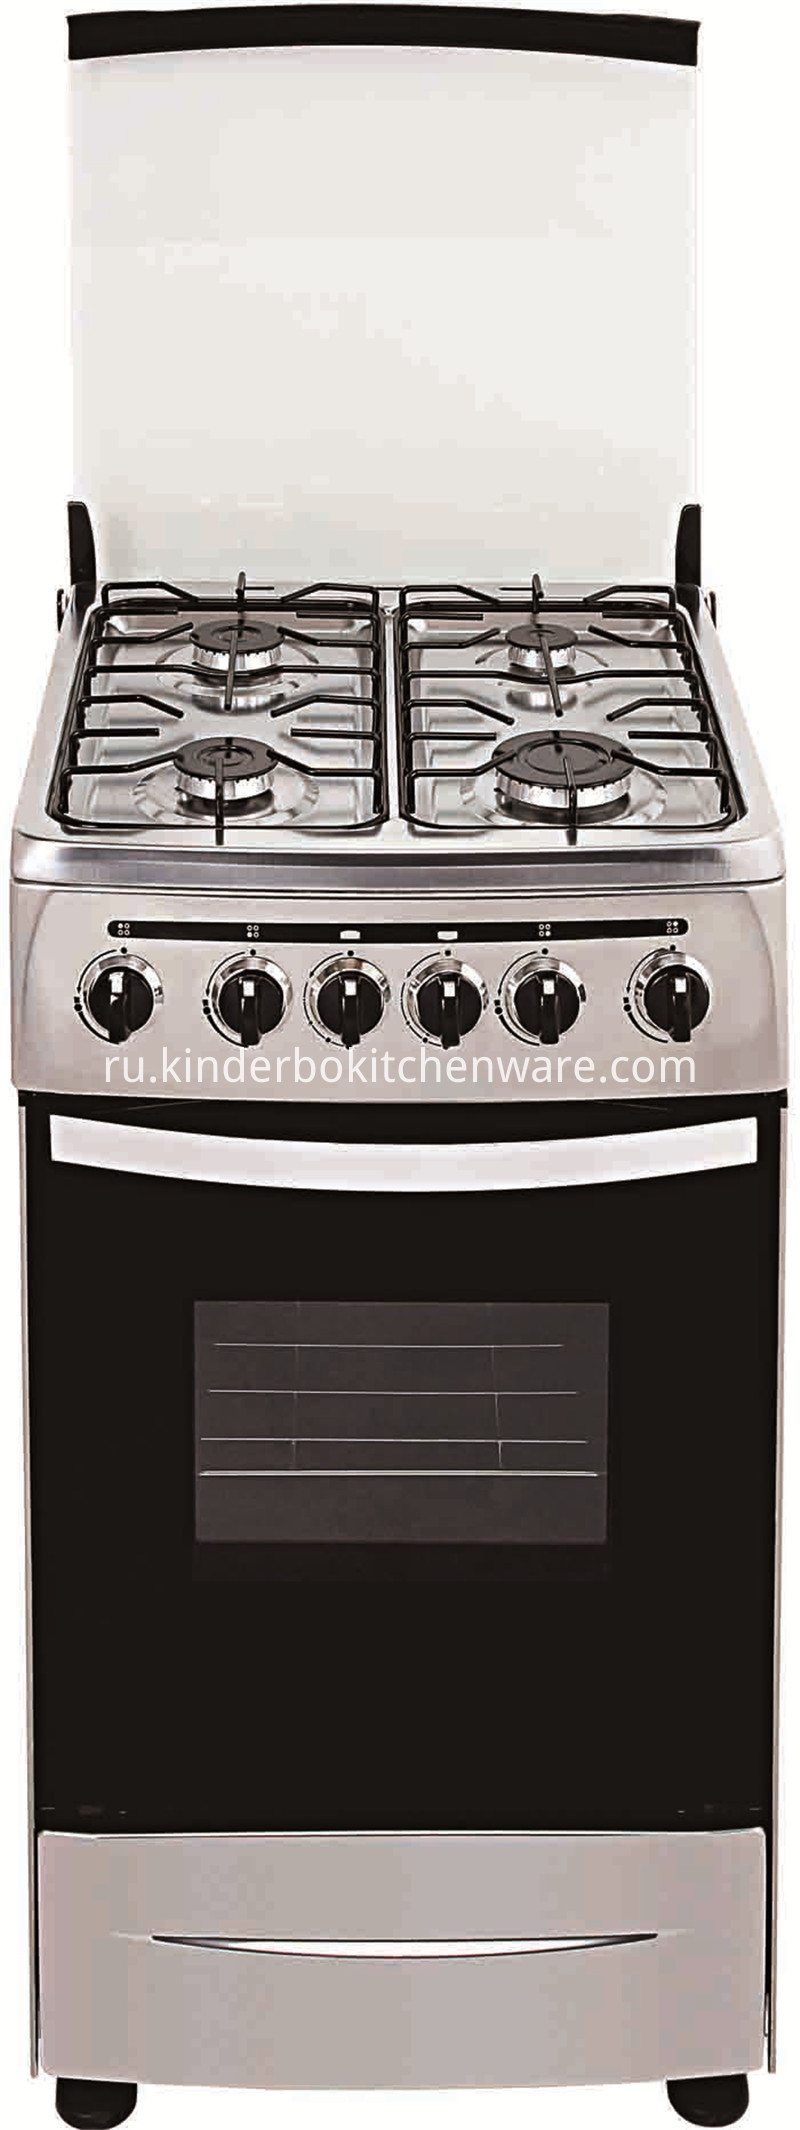 Electric Stove Big Burner Gas Stove 4 Burner Gas Stove with Oven